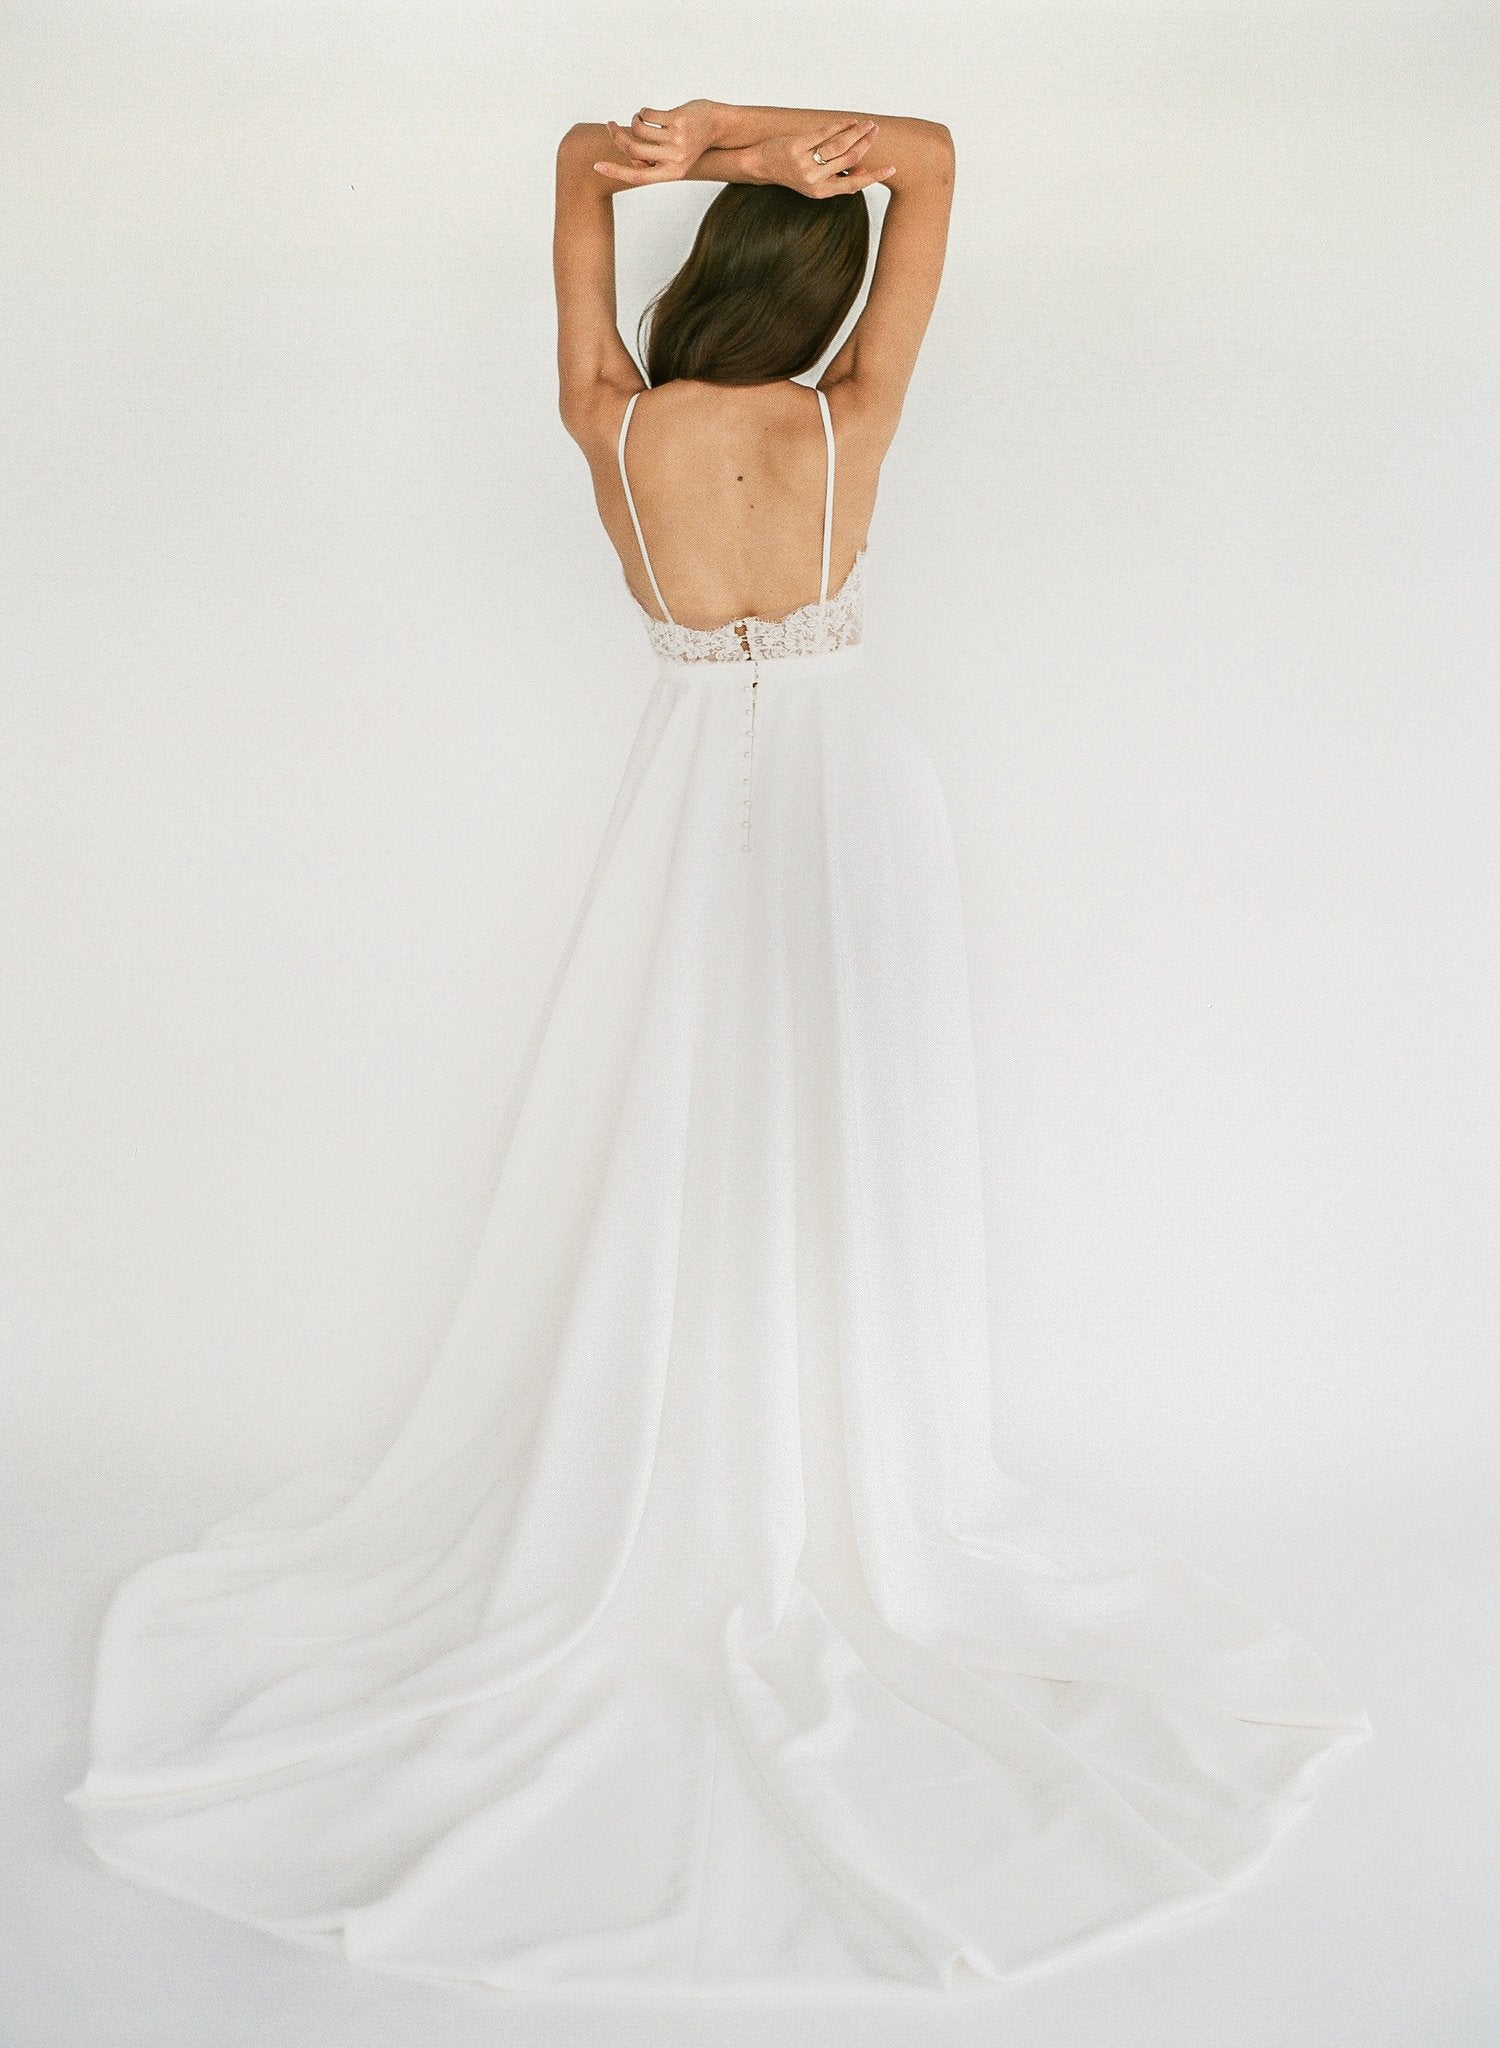 Ethical handmade romantic wedding dress with beaded lace, a button up back, and a crepe skirt with hidden pockets